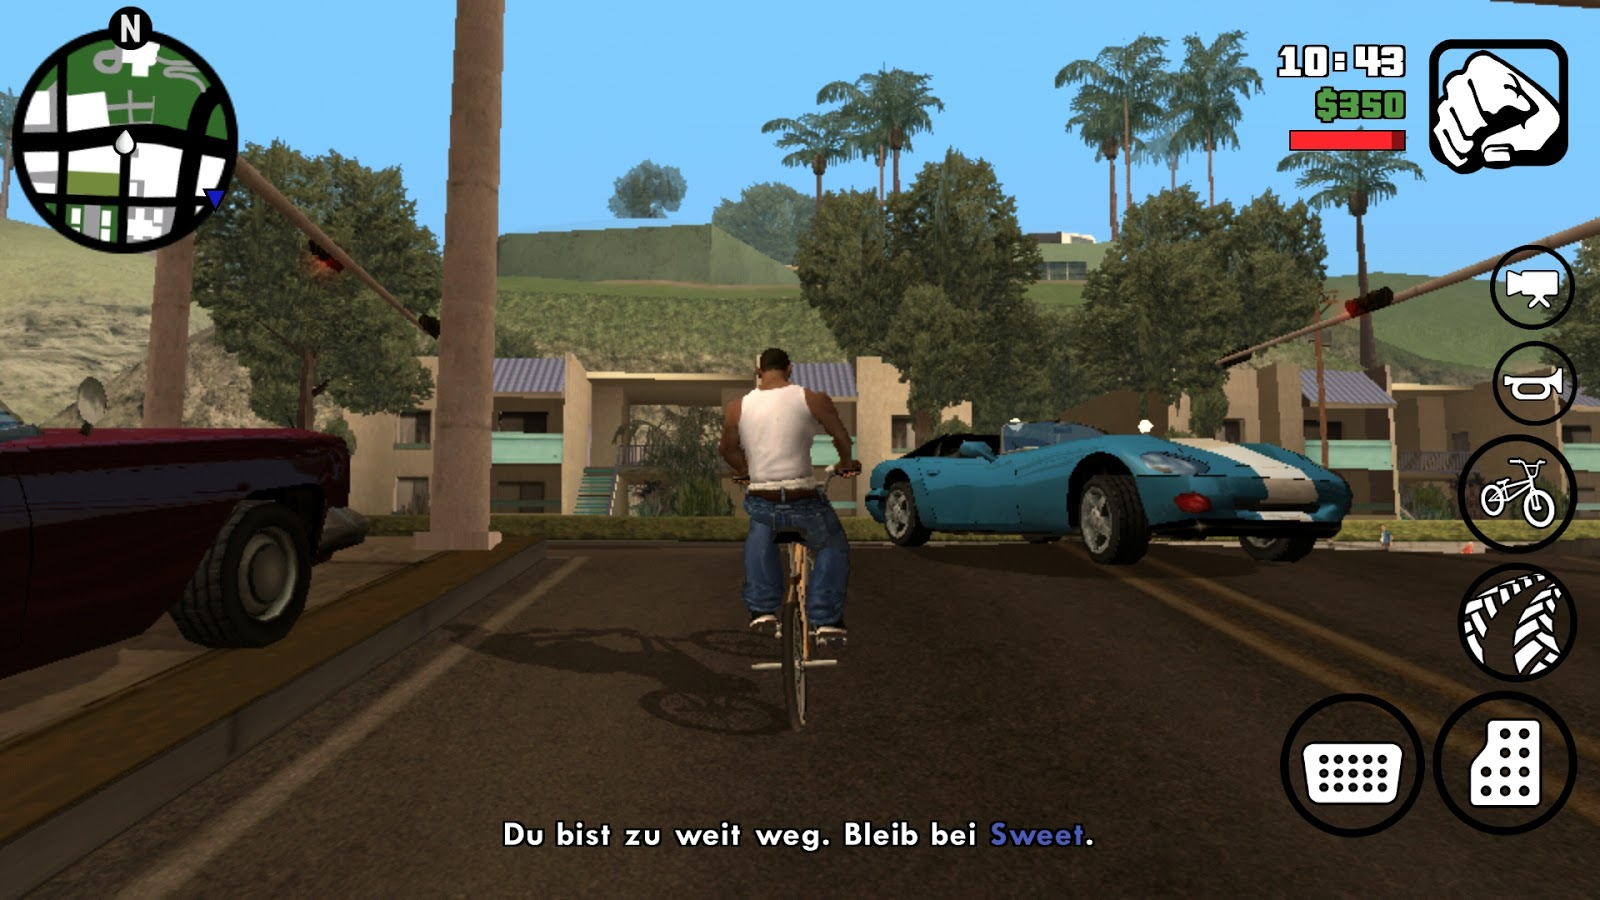 download gta san andreas apk+obb rar